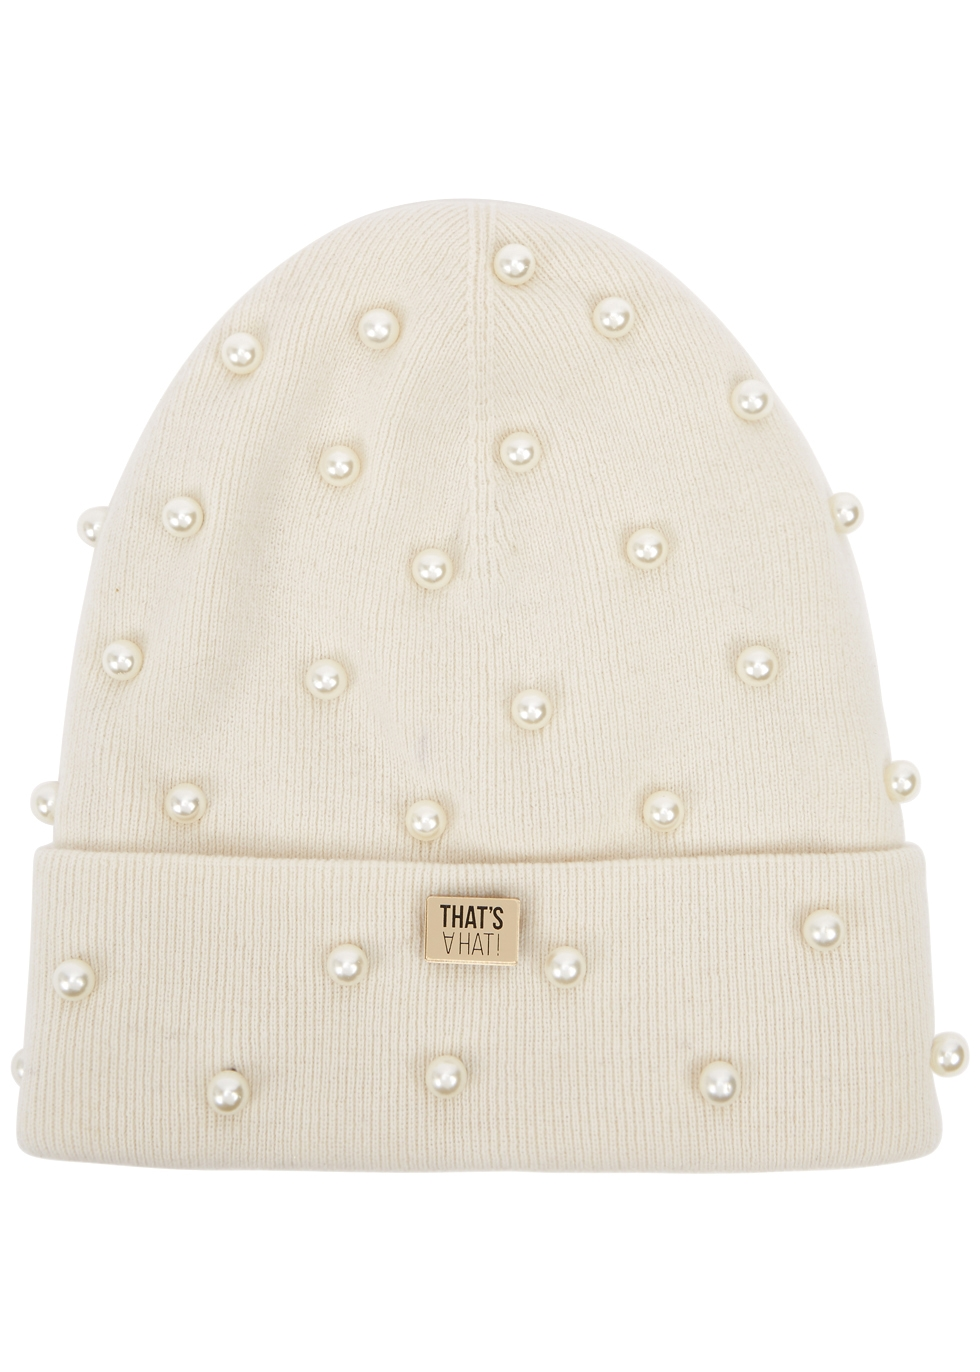 THATSAHAT ! Cream Embellished Wool-Blend Beanie